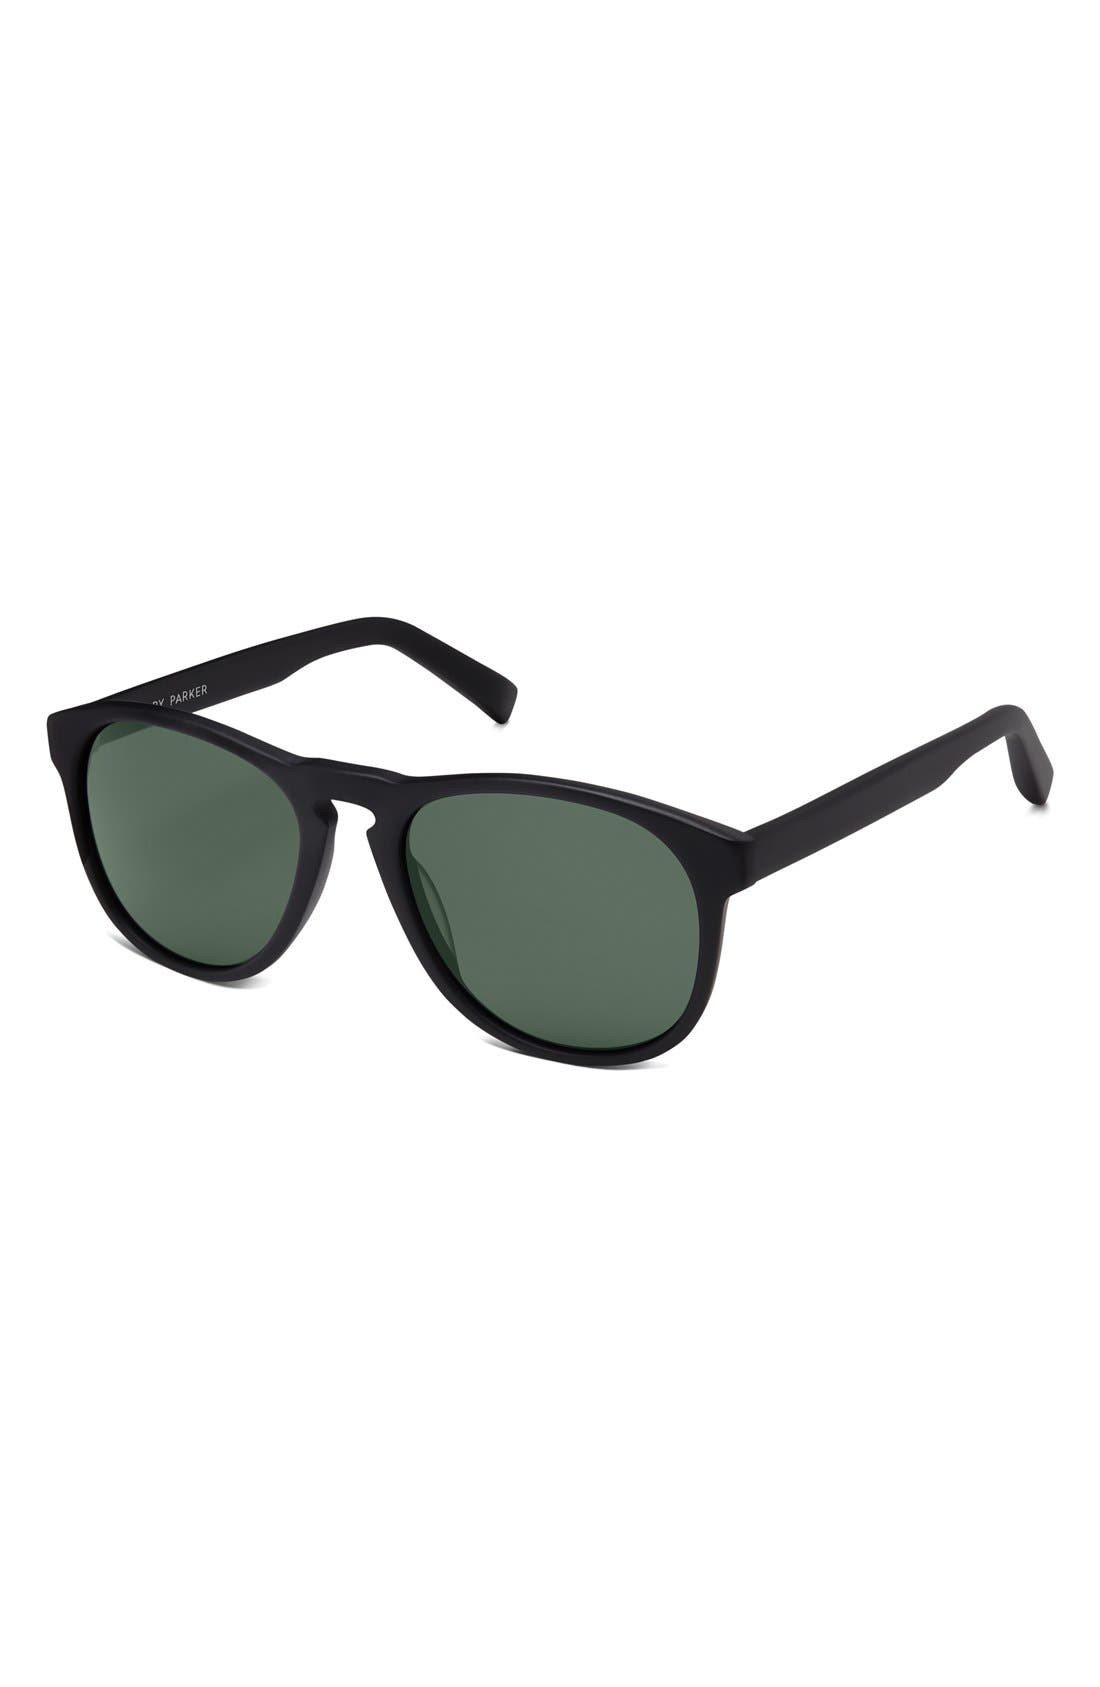 WARBY PARKER,                             'Griffin' 53mm Polarized Sunglasses,                             Alternate thumbnail 2, color,                             001